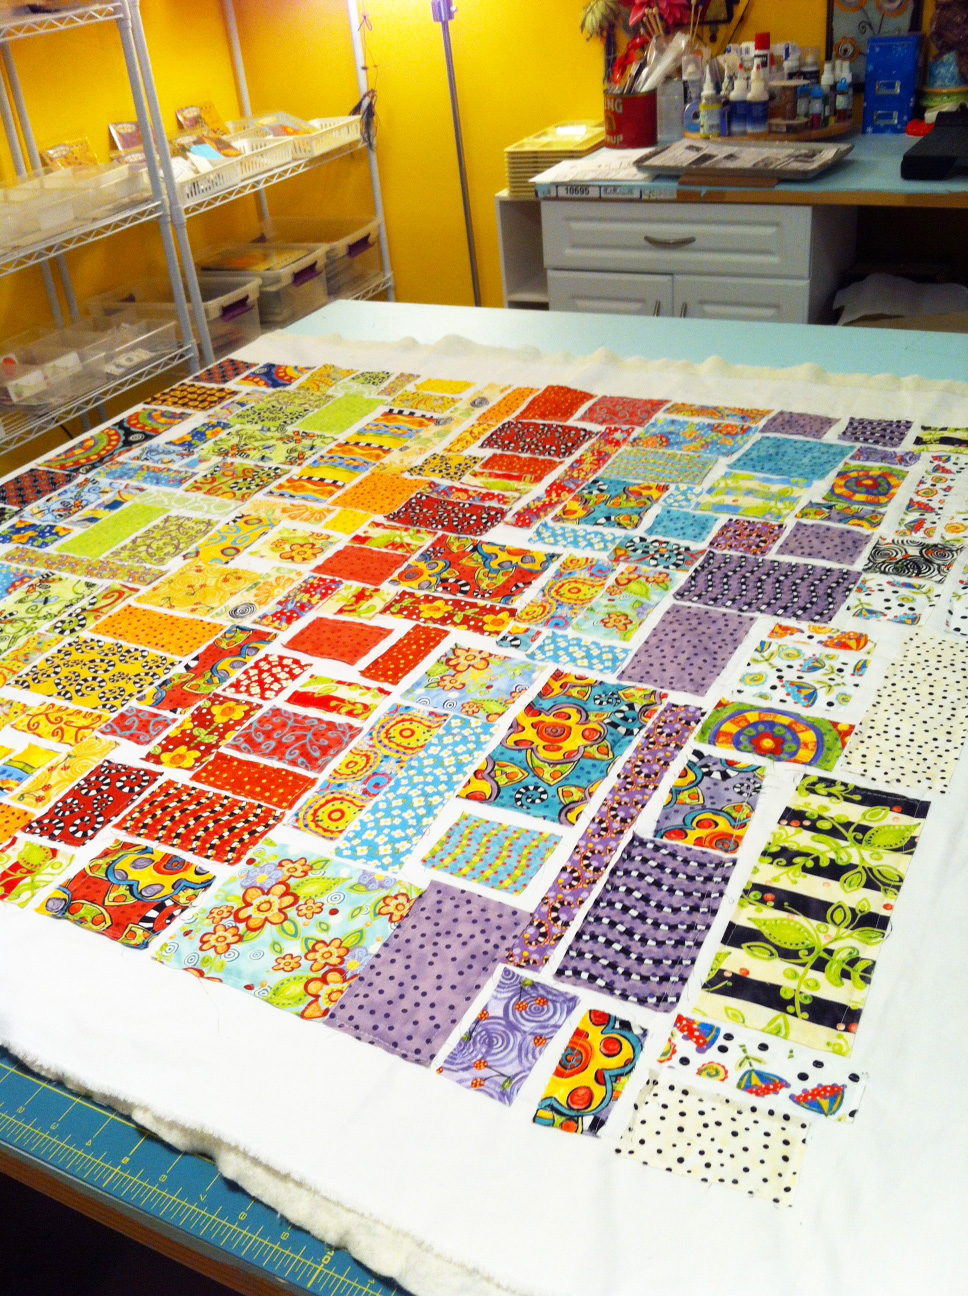 Jennifer Jangles Blog: Ticker Tape Quilt : ticker tape quilts - Adamdwight.com